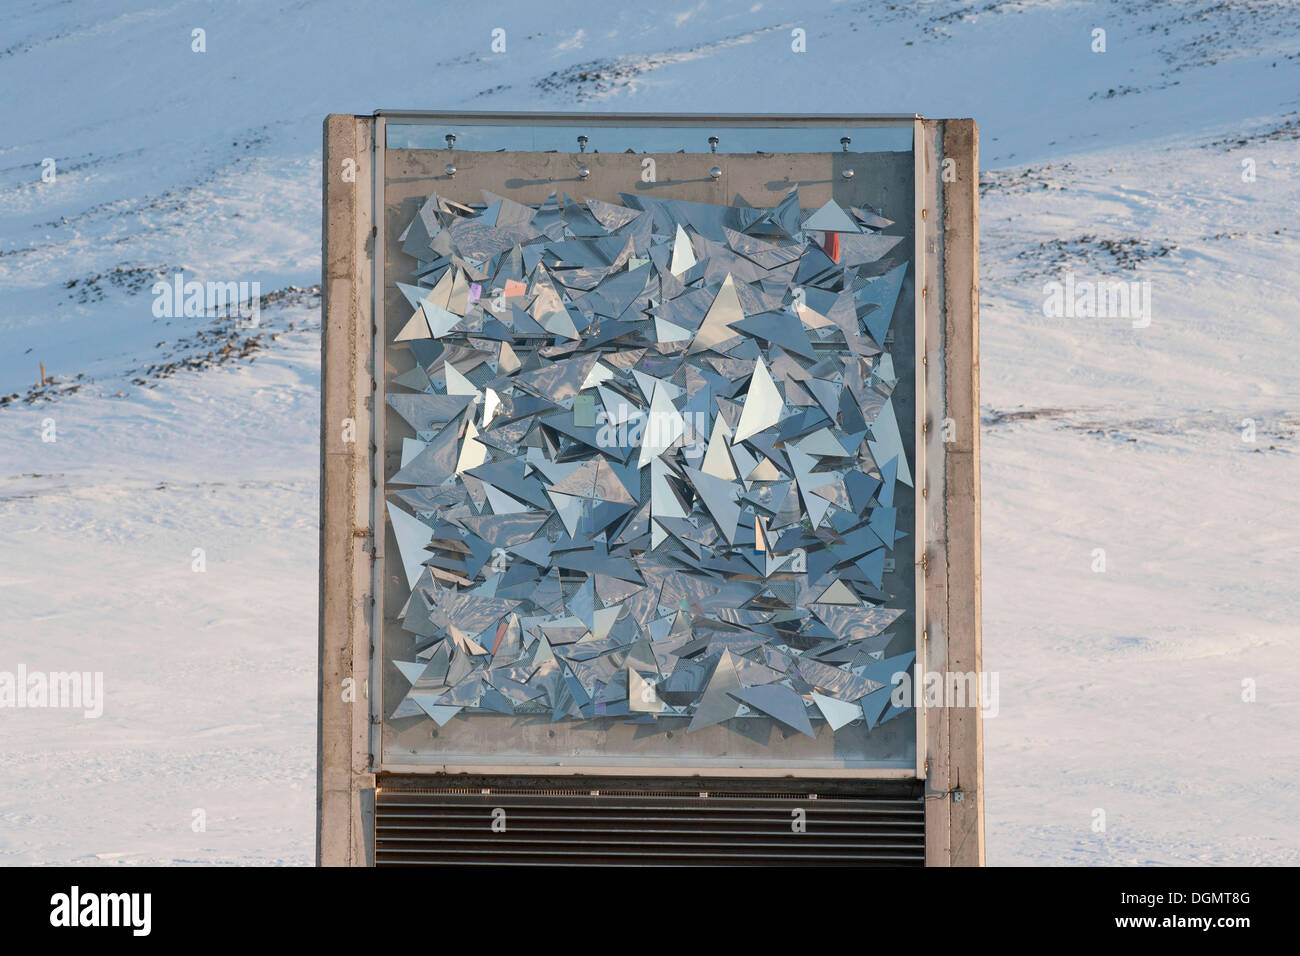 Artwork at the entrance to the Svalbard Global See Vault, Spitsbergen, Svalbard, Norway, Europe - Stock Image